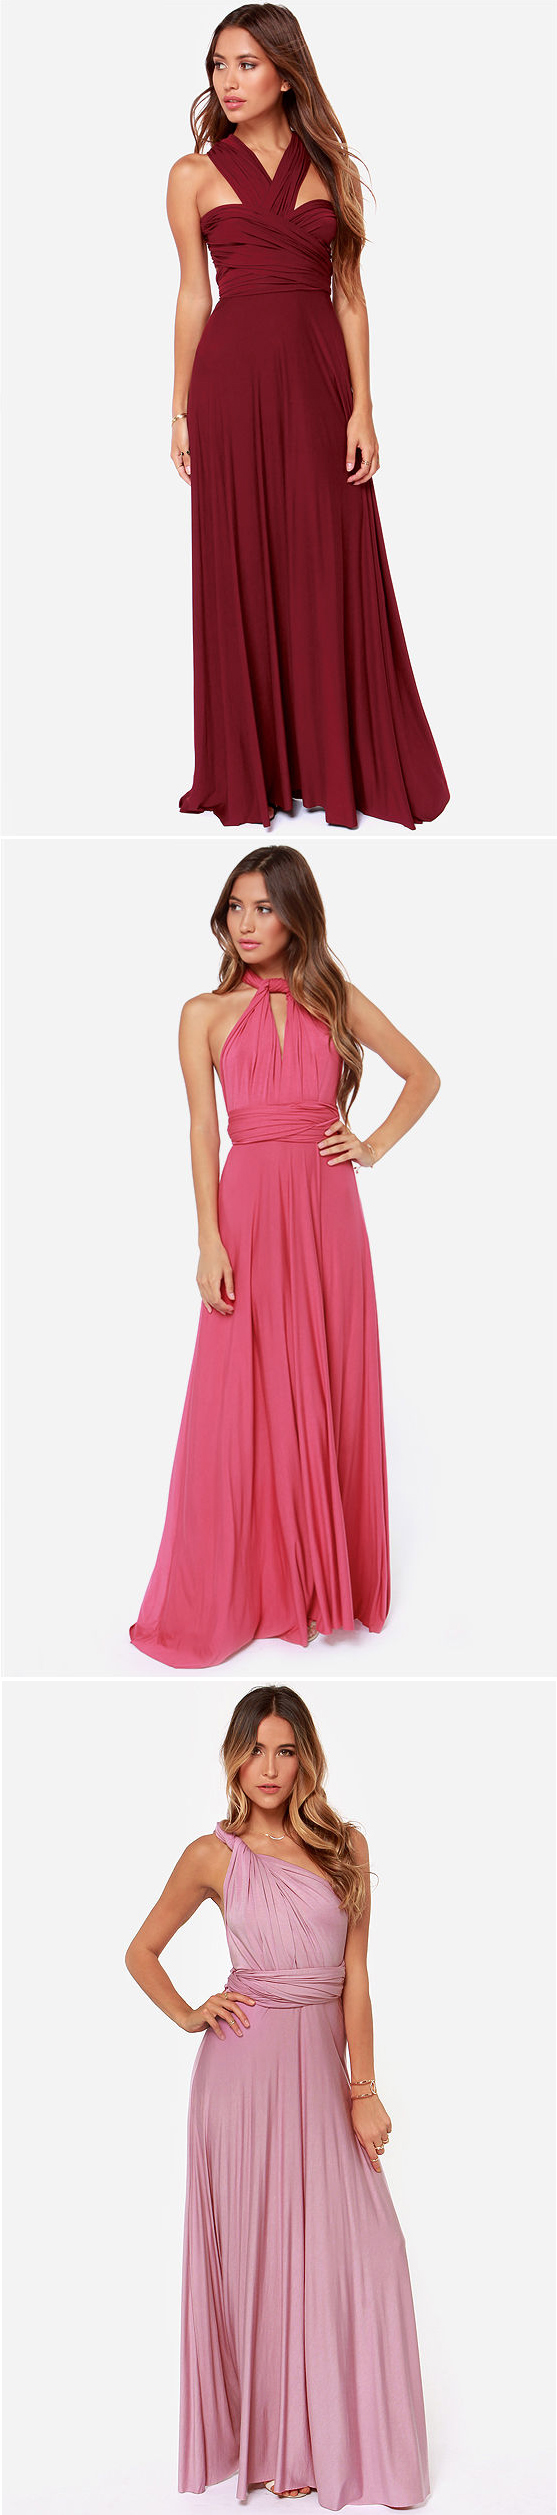 Fantastic convertible dress in lots of colors for only $68 ...